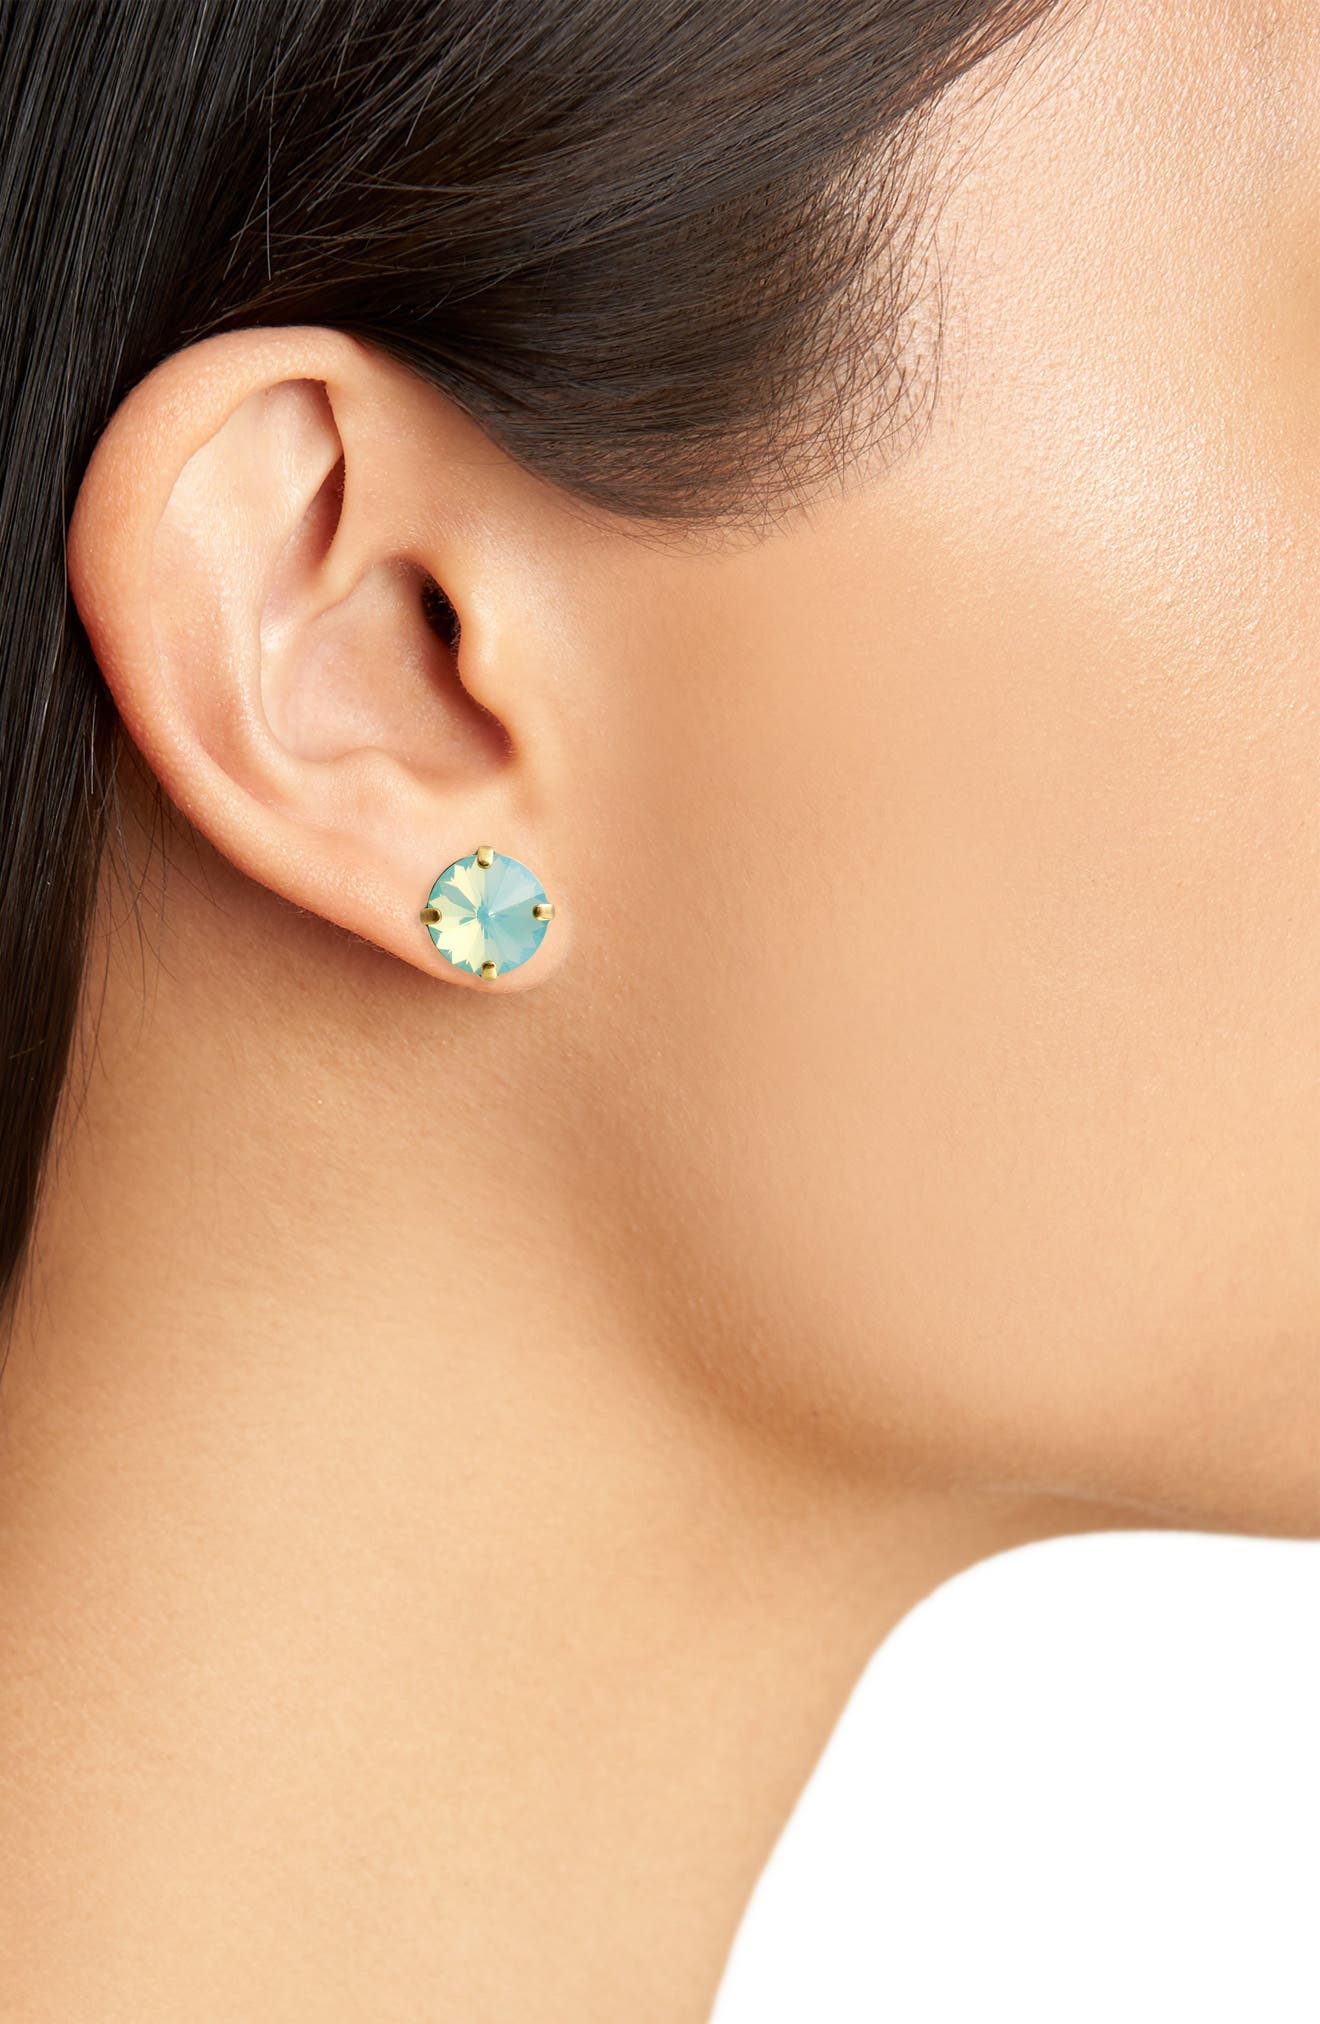 Radiant Rivoli Crystal Earrings,                             Alternate thumbnail 2, color,                             BLUE-GREEN/ GOLD